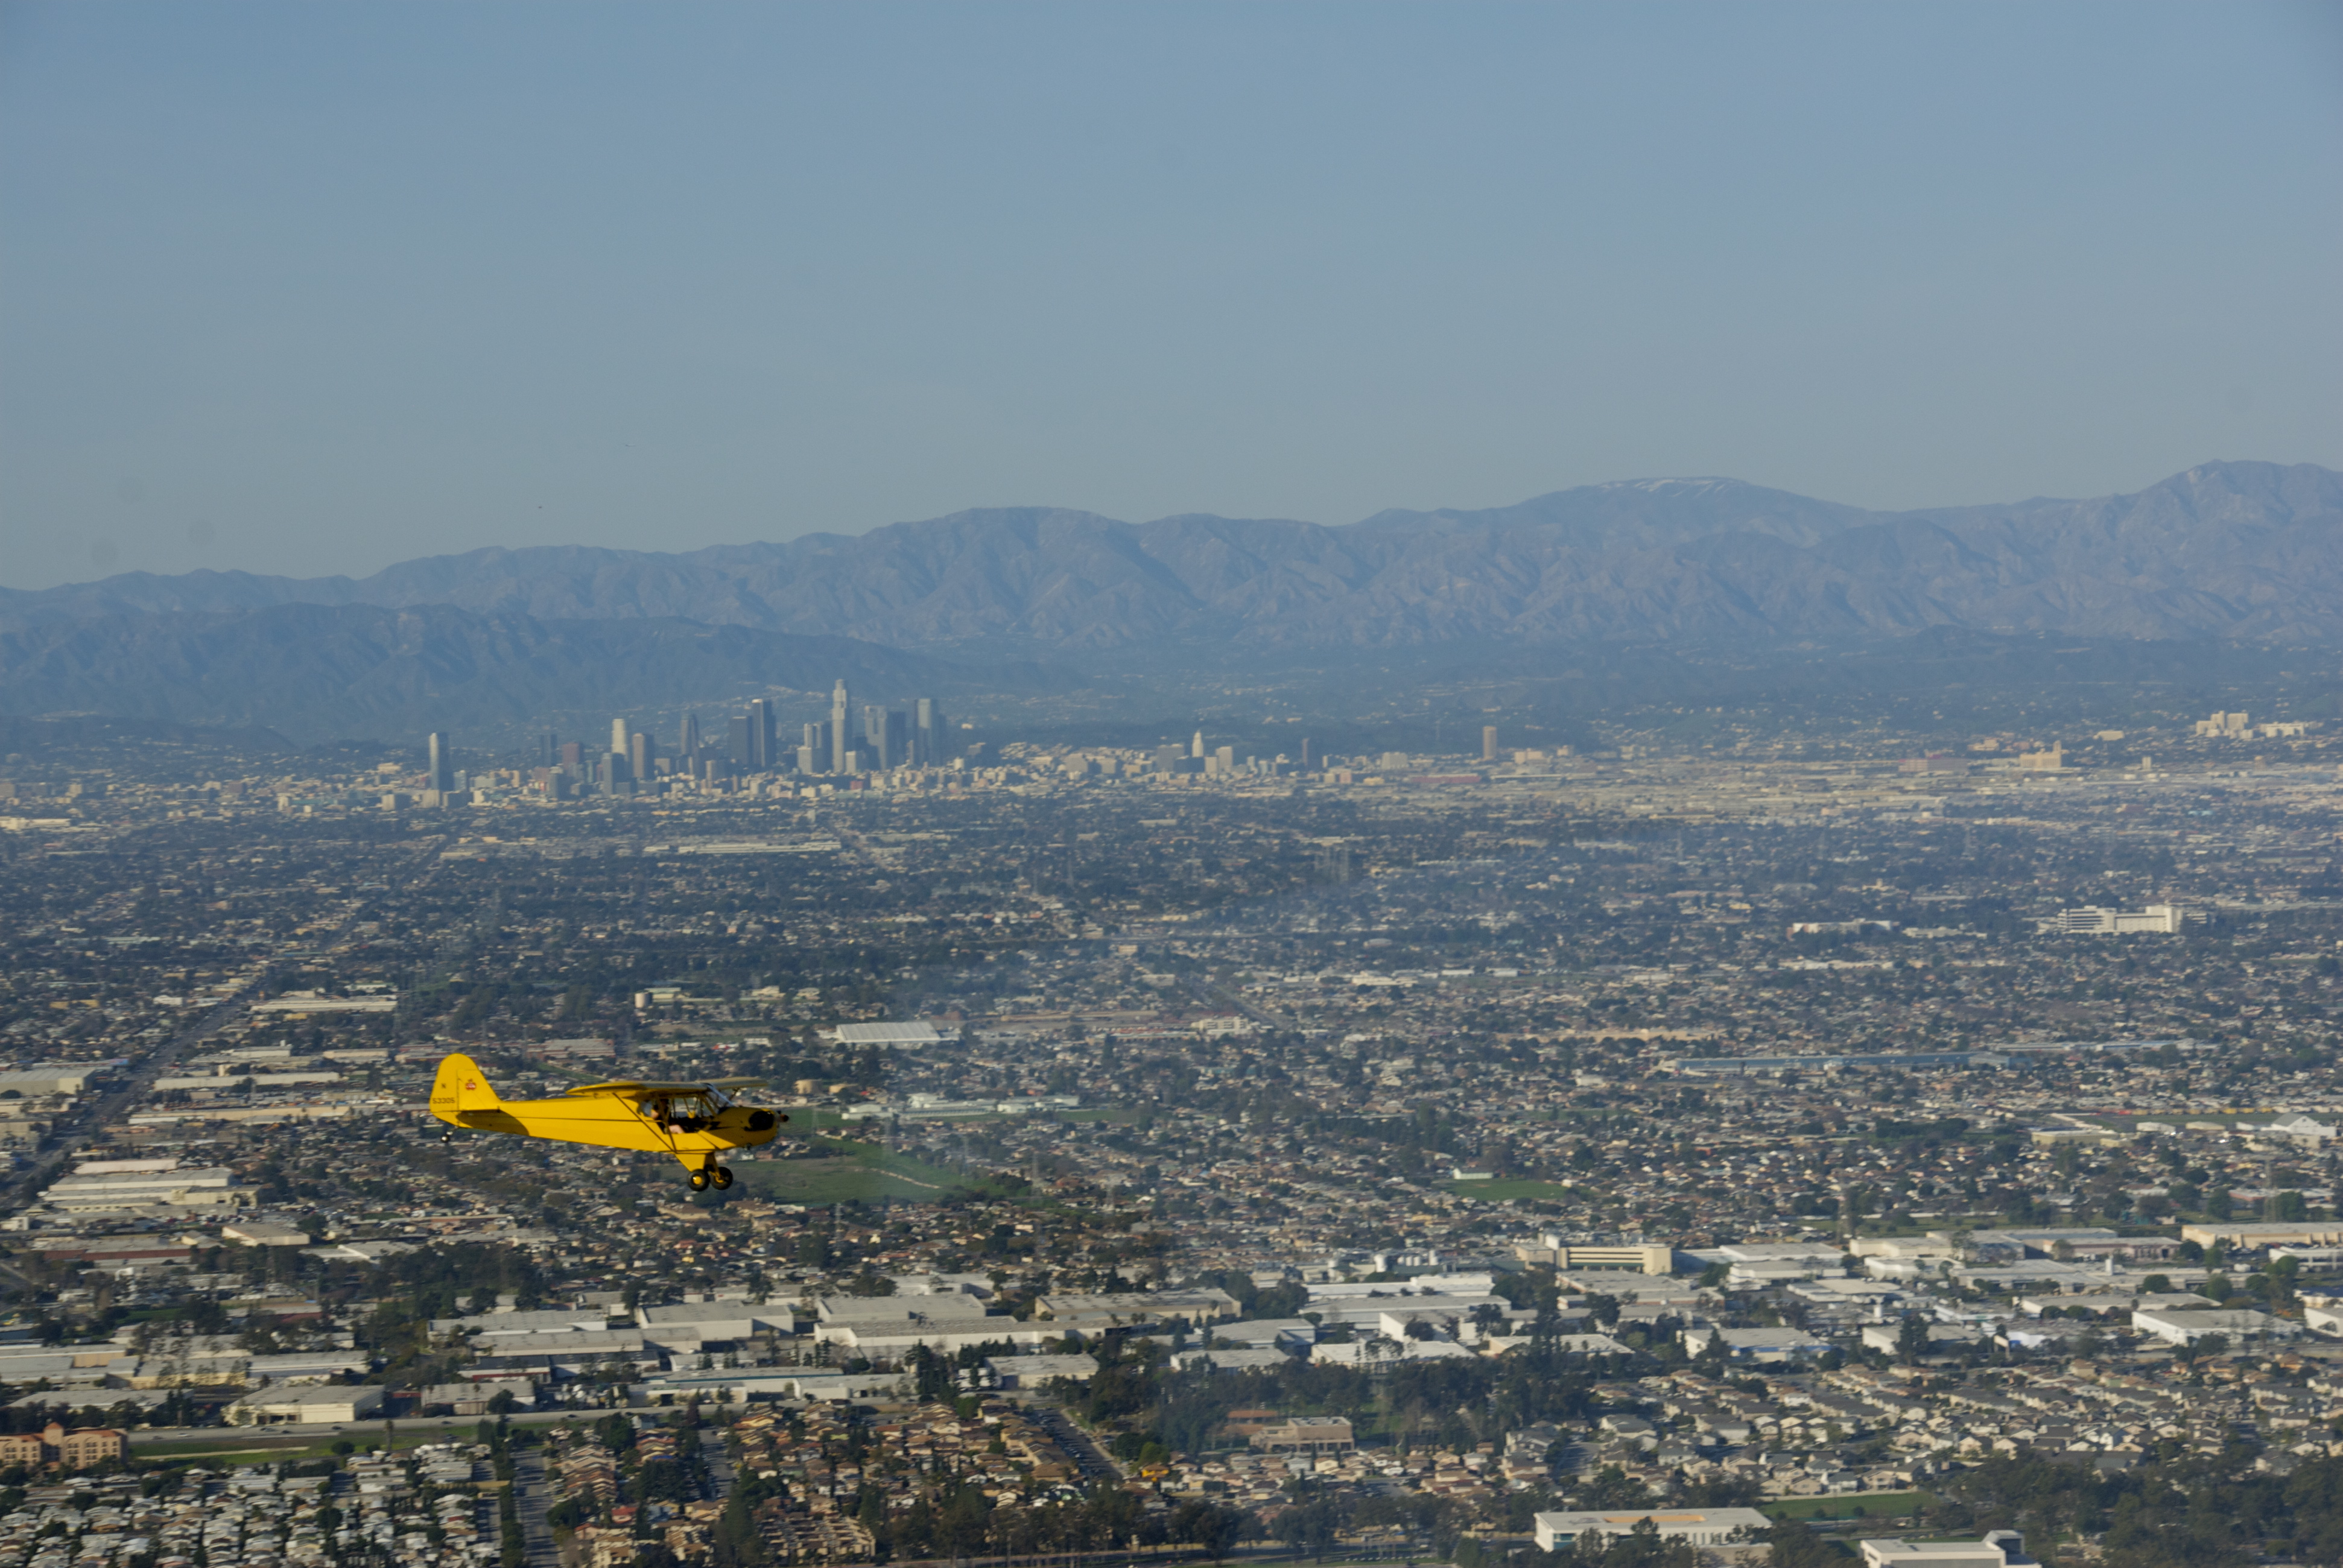 File:Piper Cub over Los Angeles from a hovering Eureka, hey